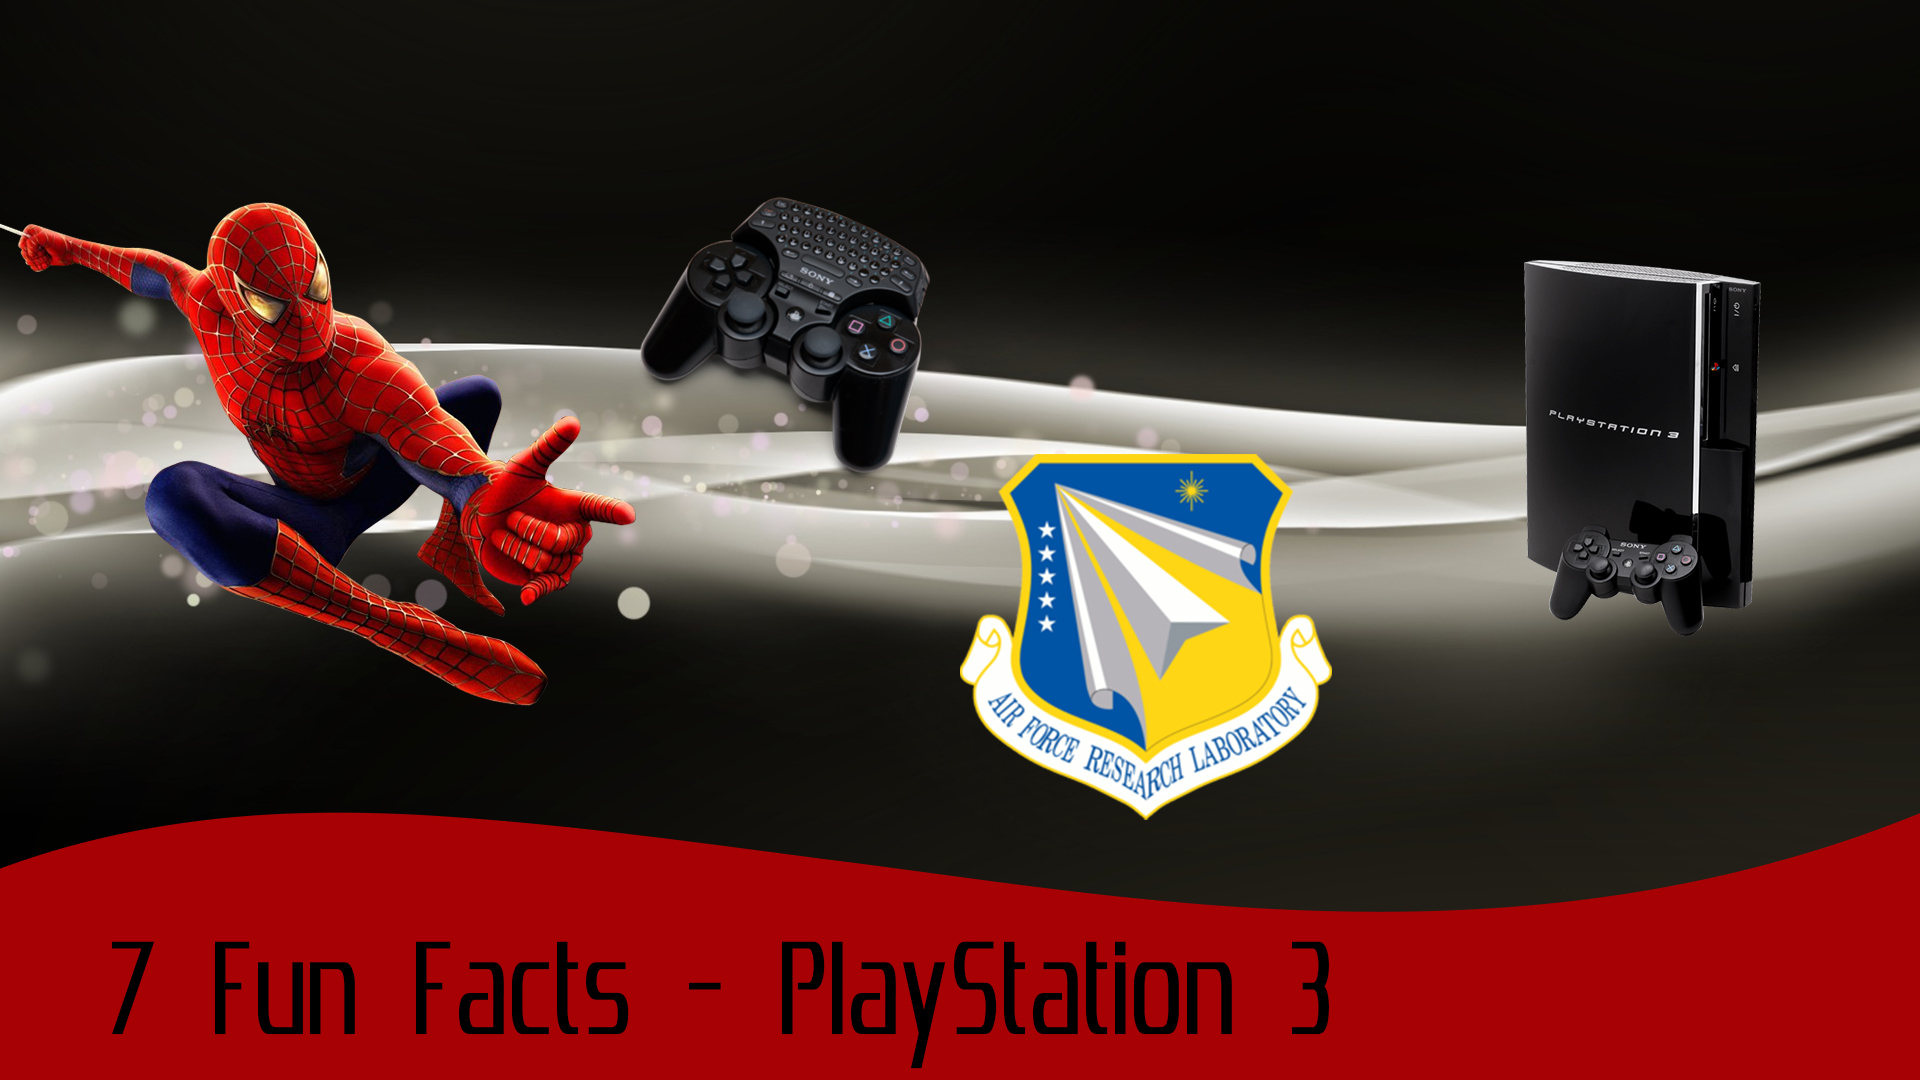 7 Fun Facts about the PlayStation 3